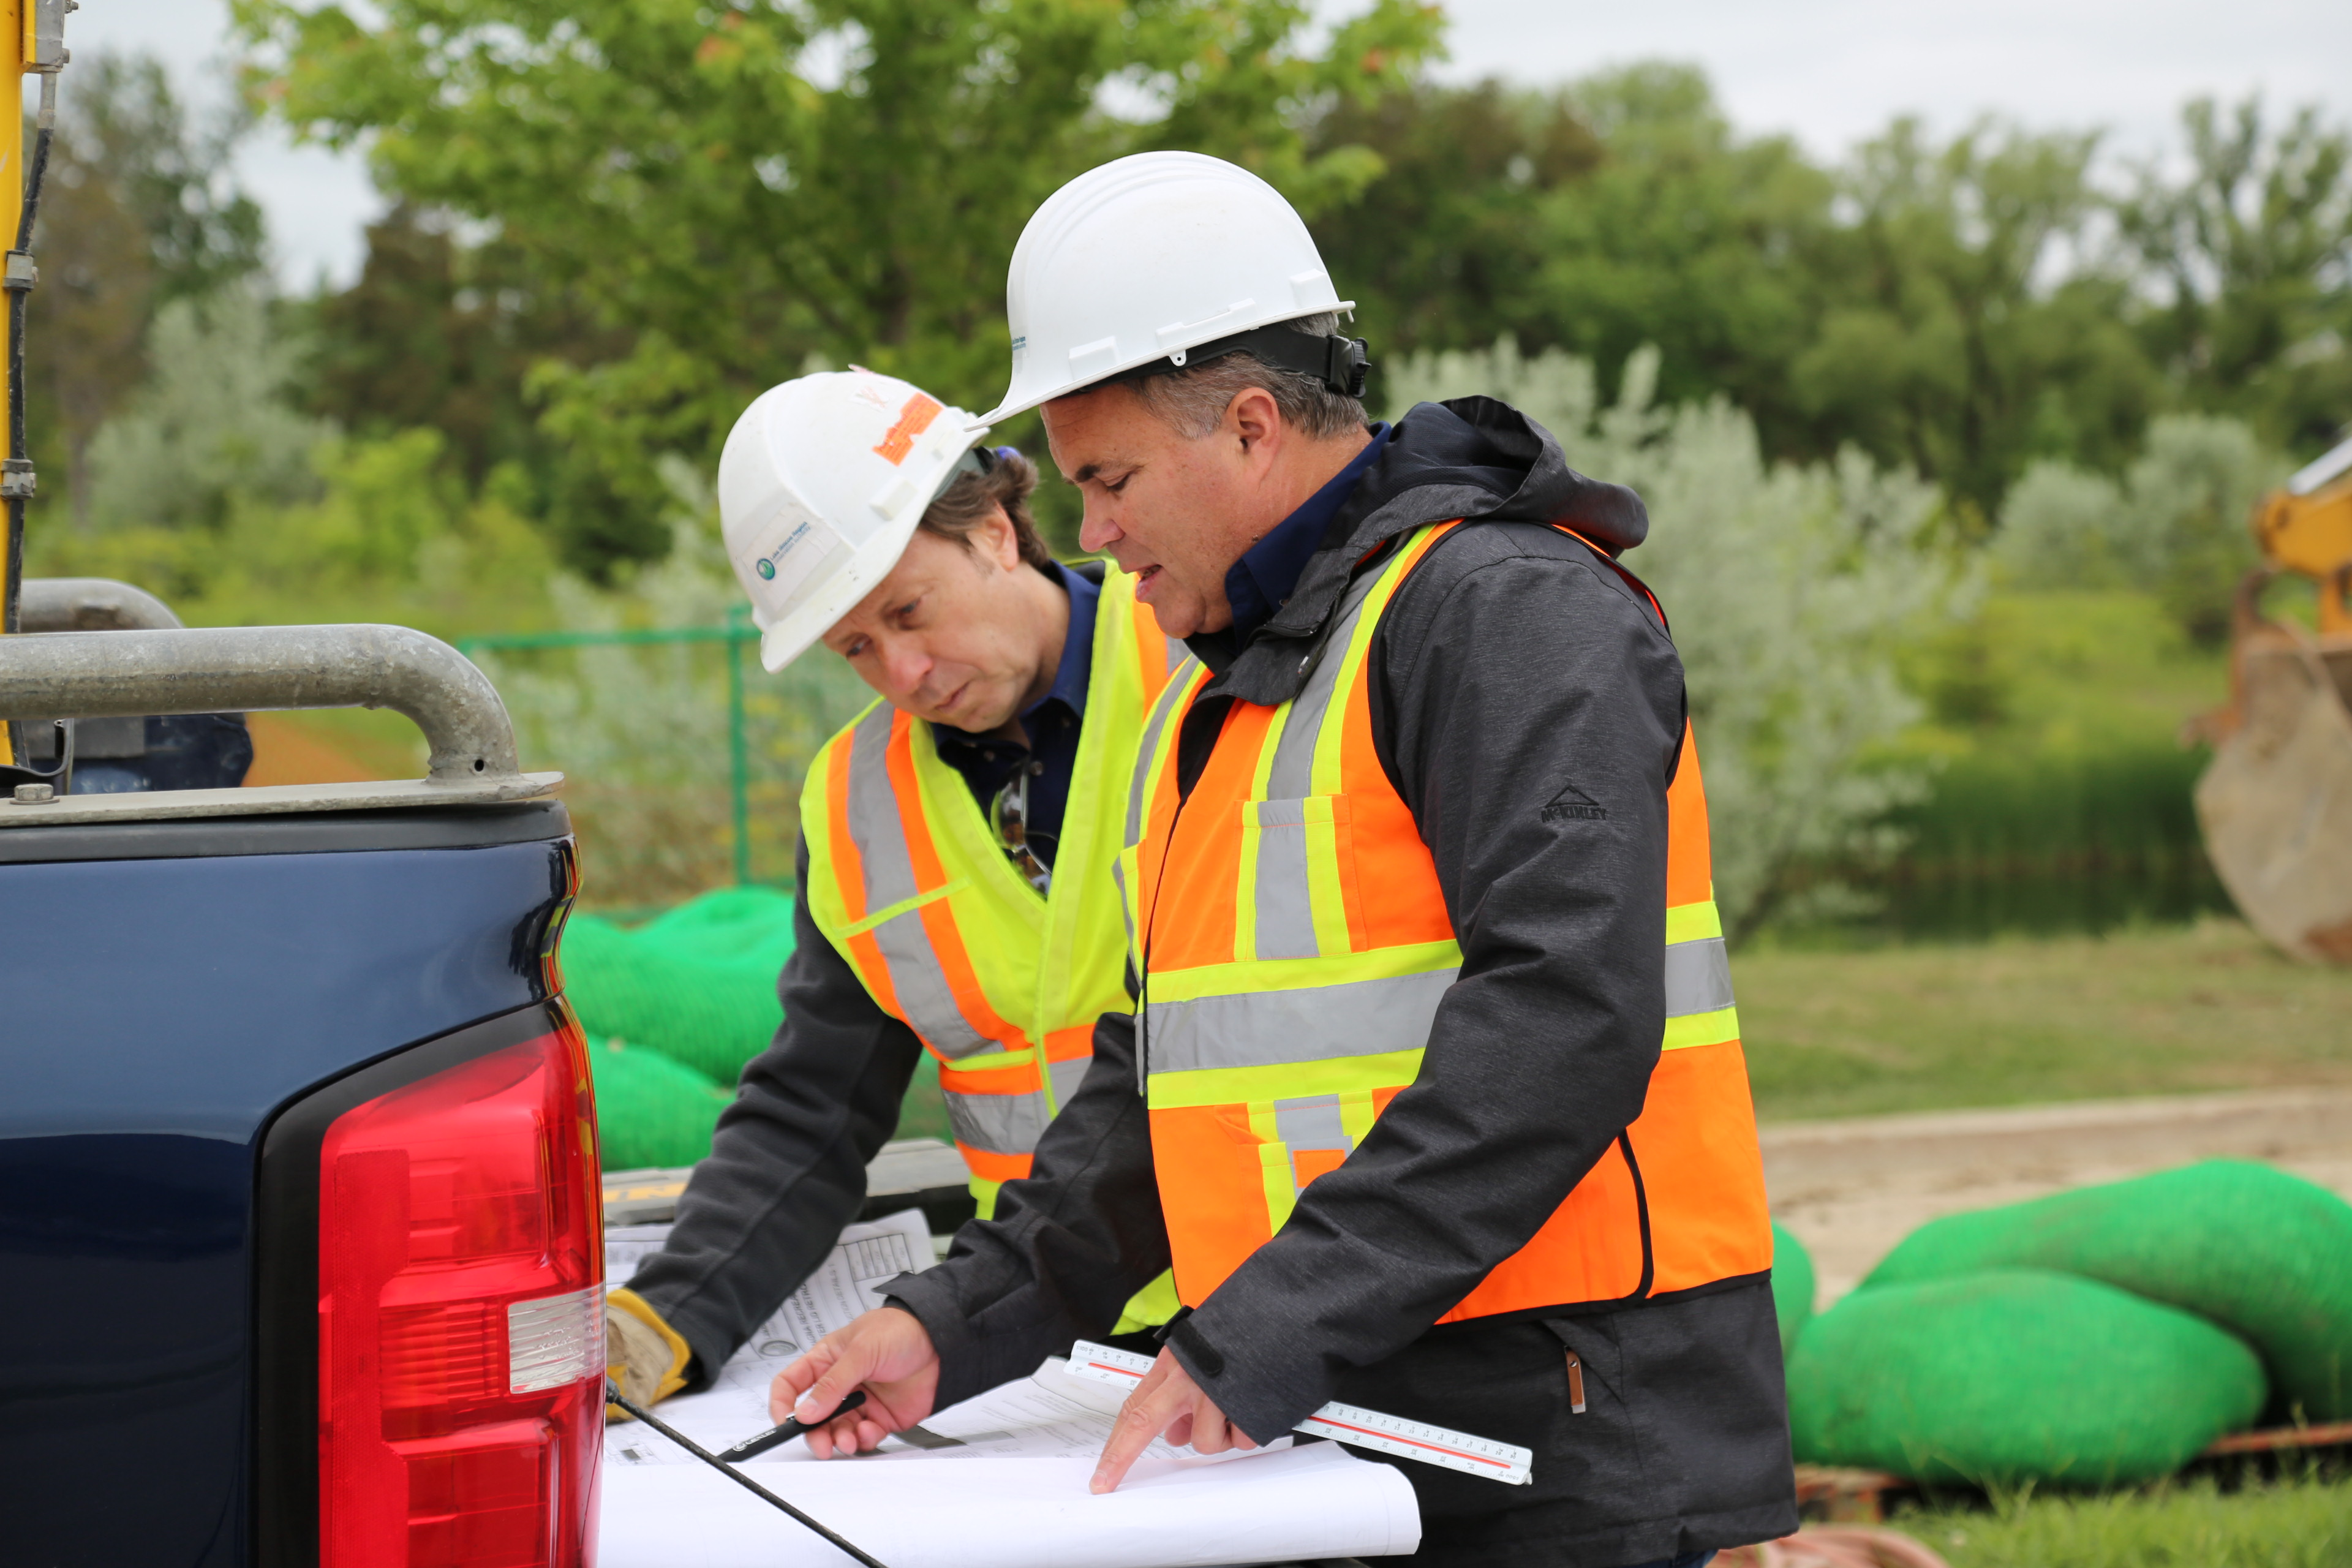 Two men wearing construction hats and vests looking at site plans.